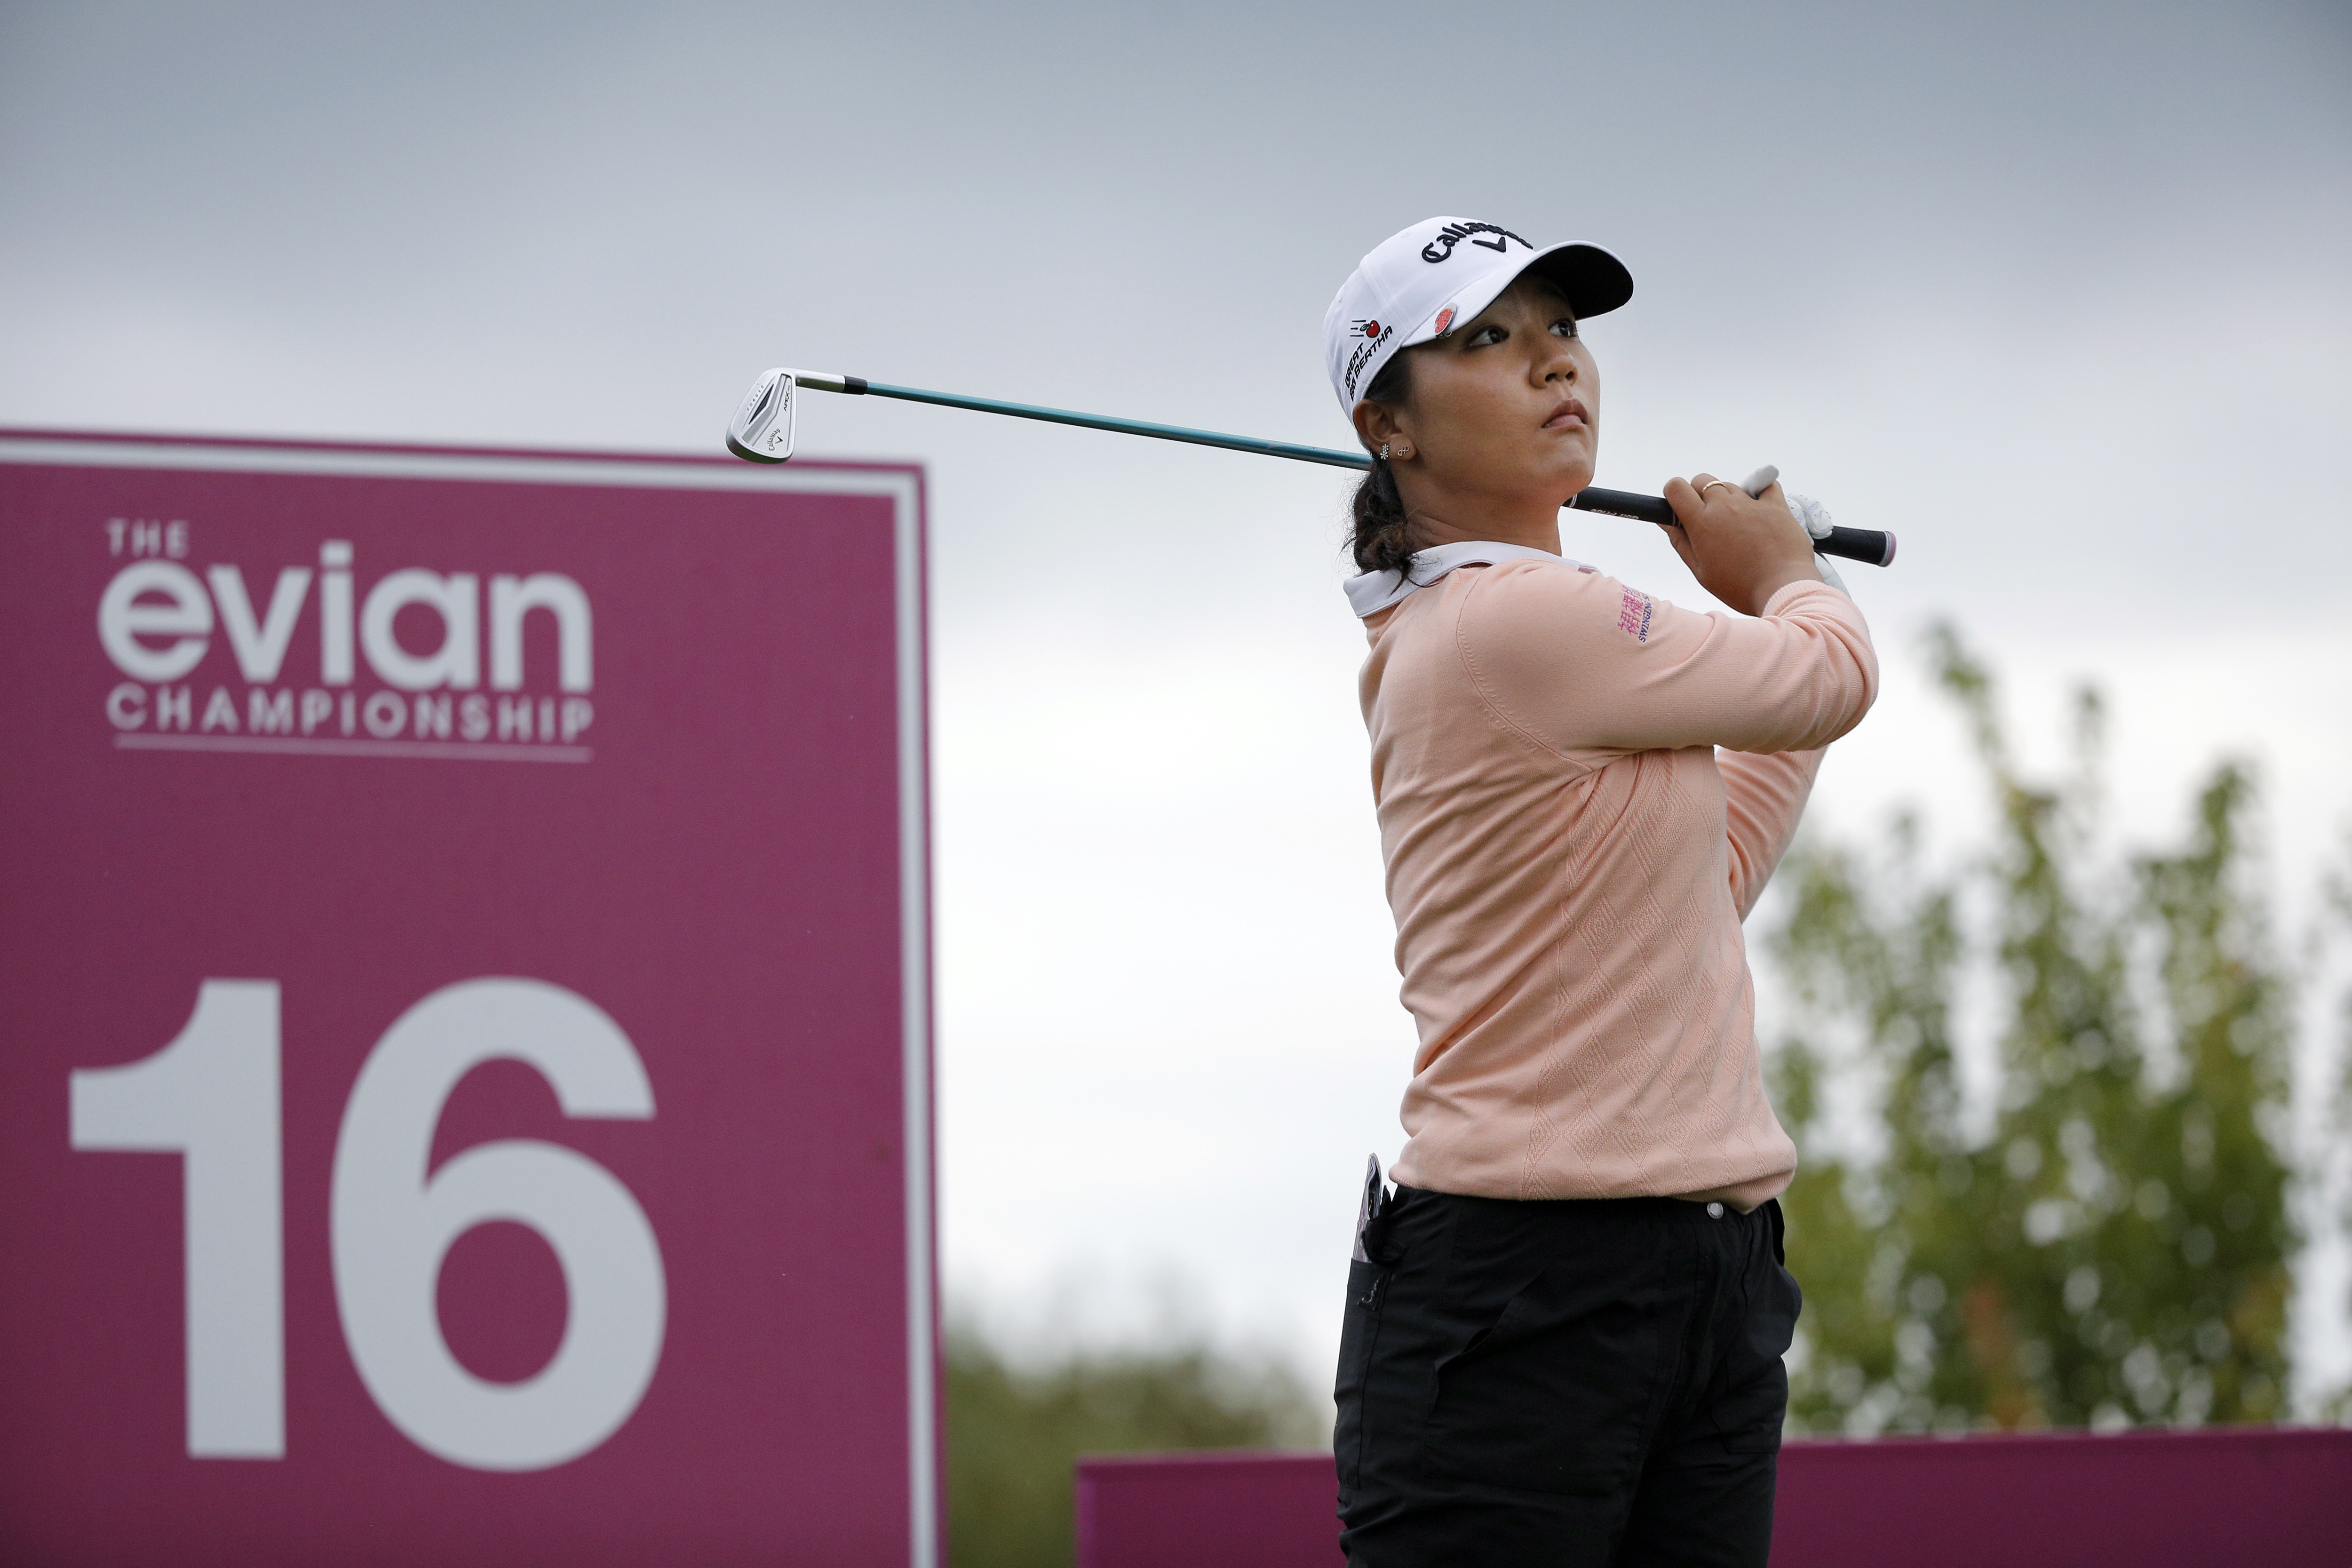 Lydia Ko of New Zealand follows the flight of her ball after playing on the 16th hole, during the second round of the Evian Championship women's golf tournament in Evian, eastern France, Friday, Sept. 16, 2016. (AP Photo/Laurent